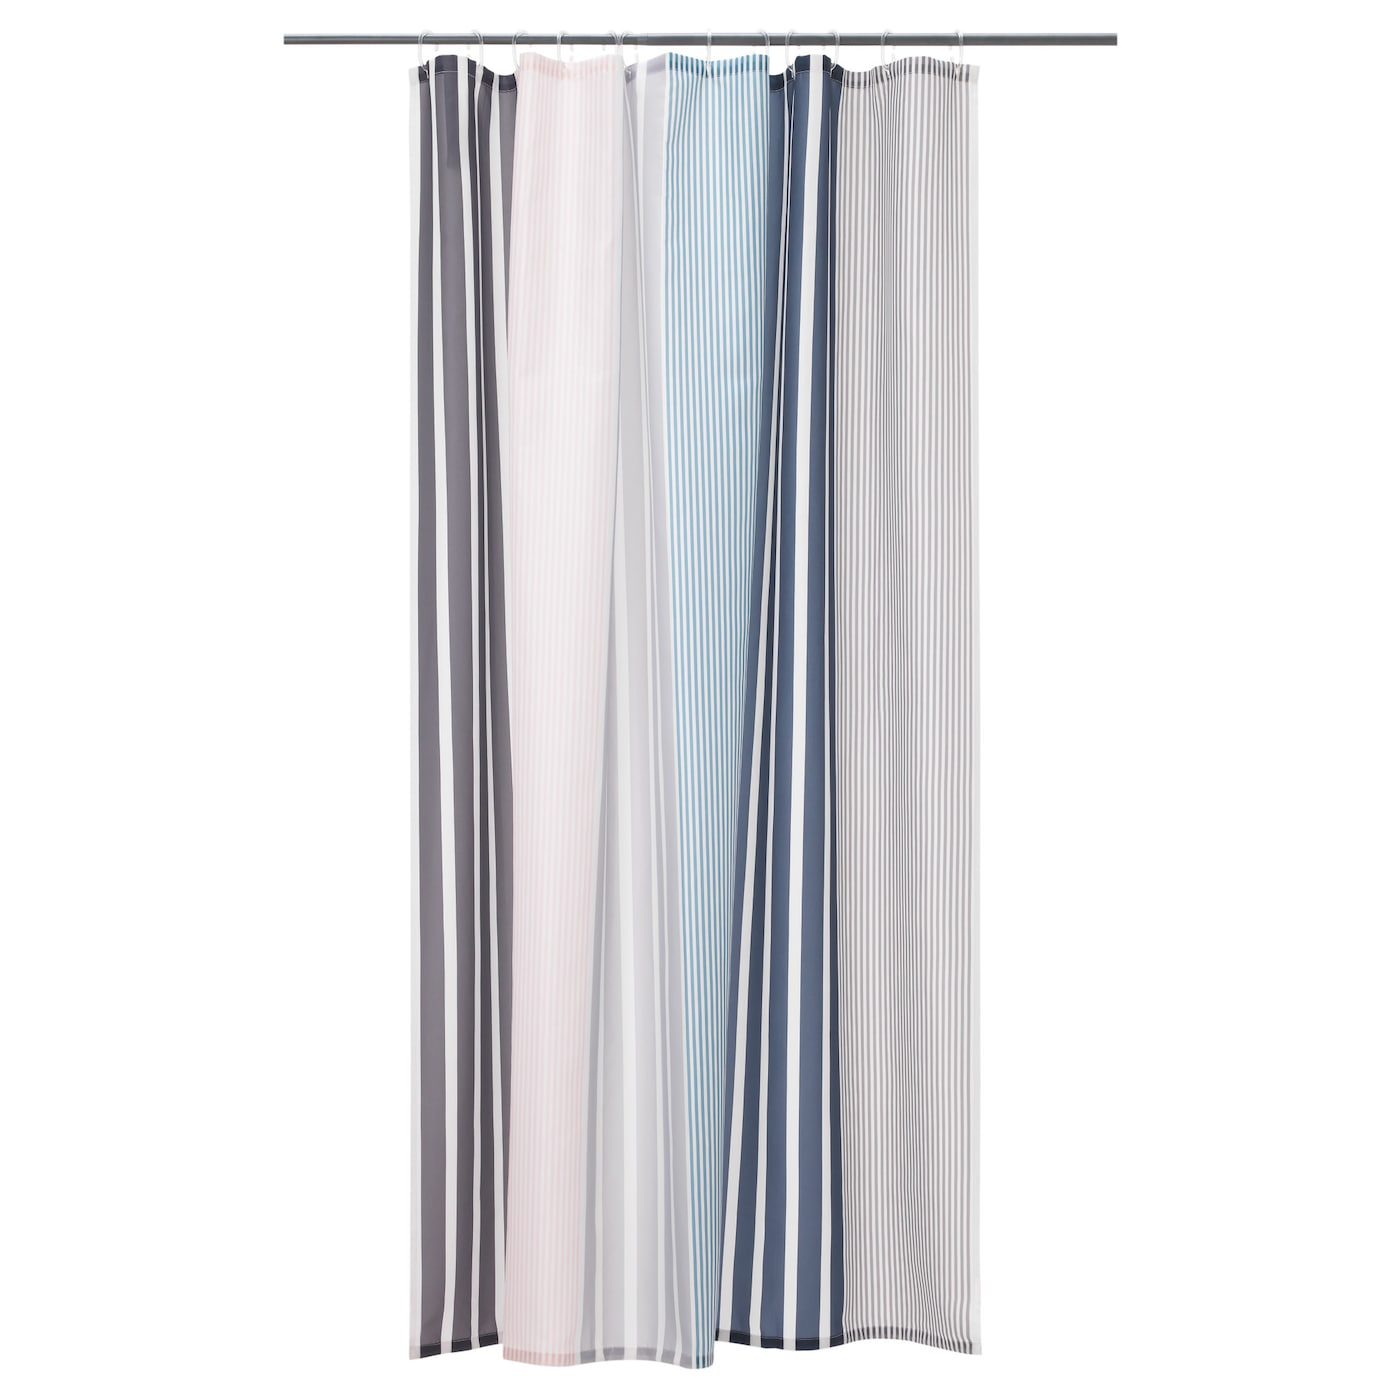 IKEA BOLMAN Shower Curtain Densely Woven Polyester Fabric With Water Repellent Coating